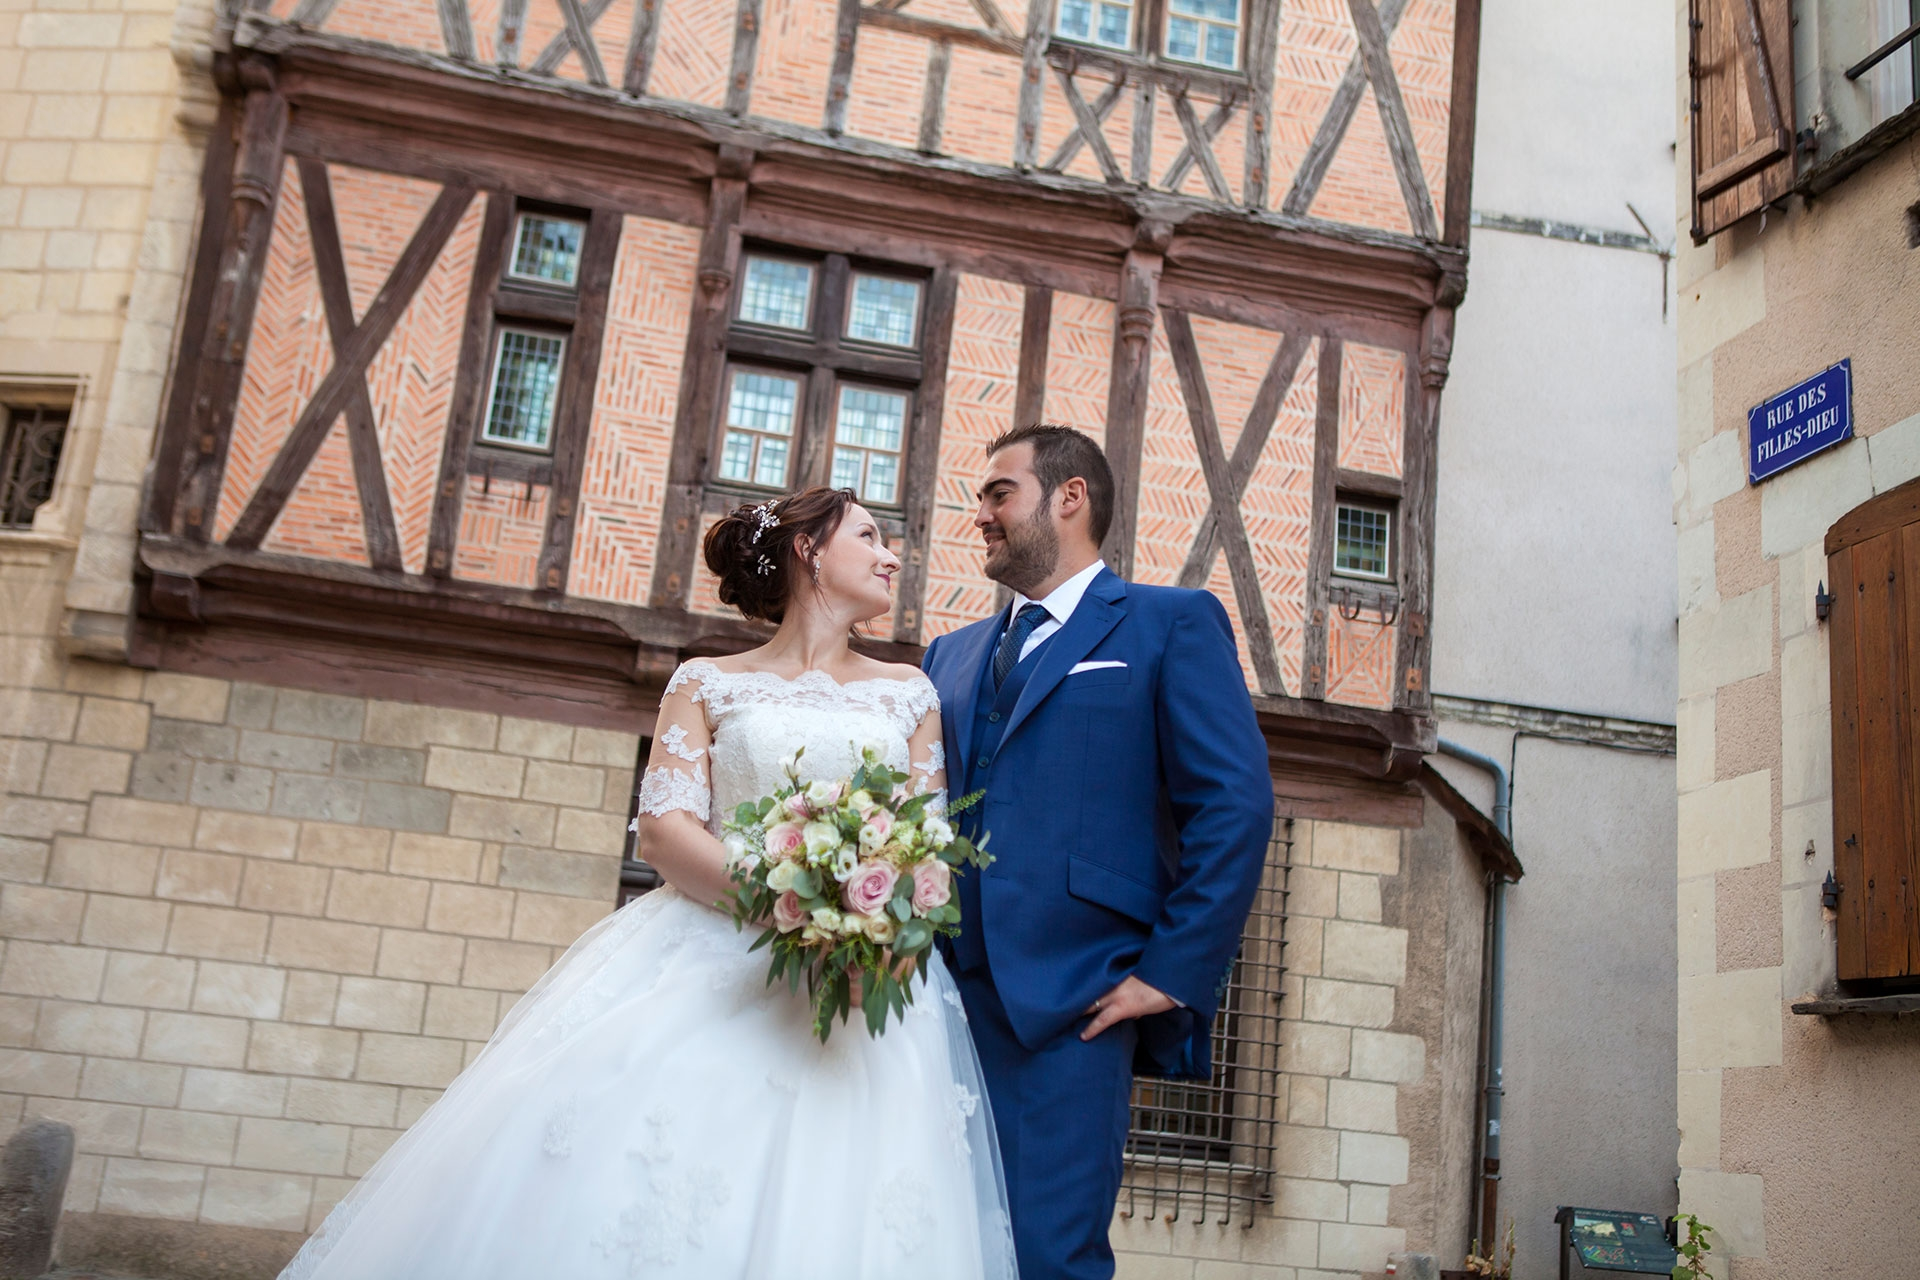 particuliers-evenements-mariage-oui-tiphaine&rudy-72